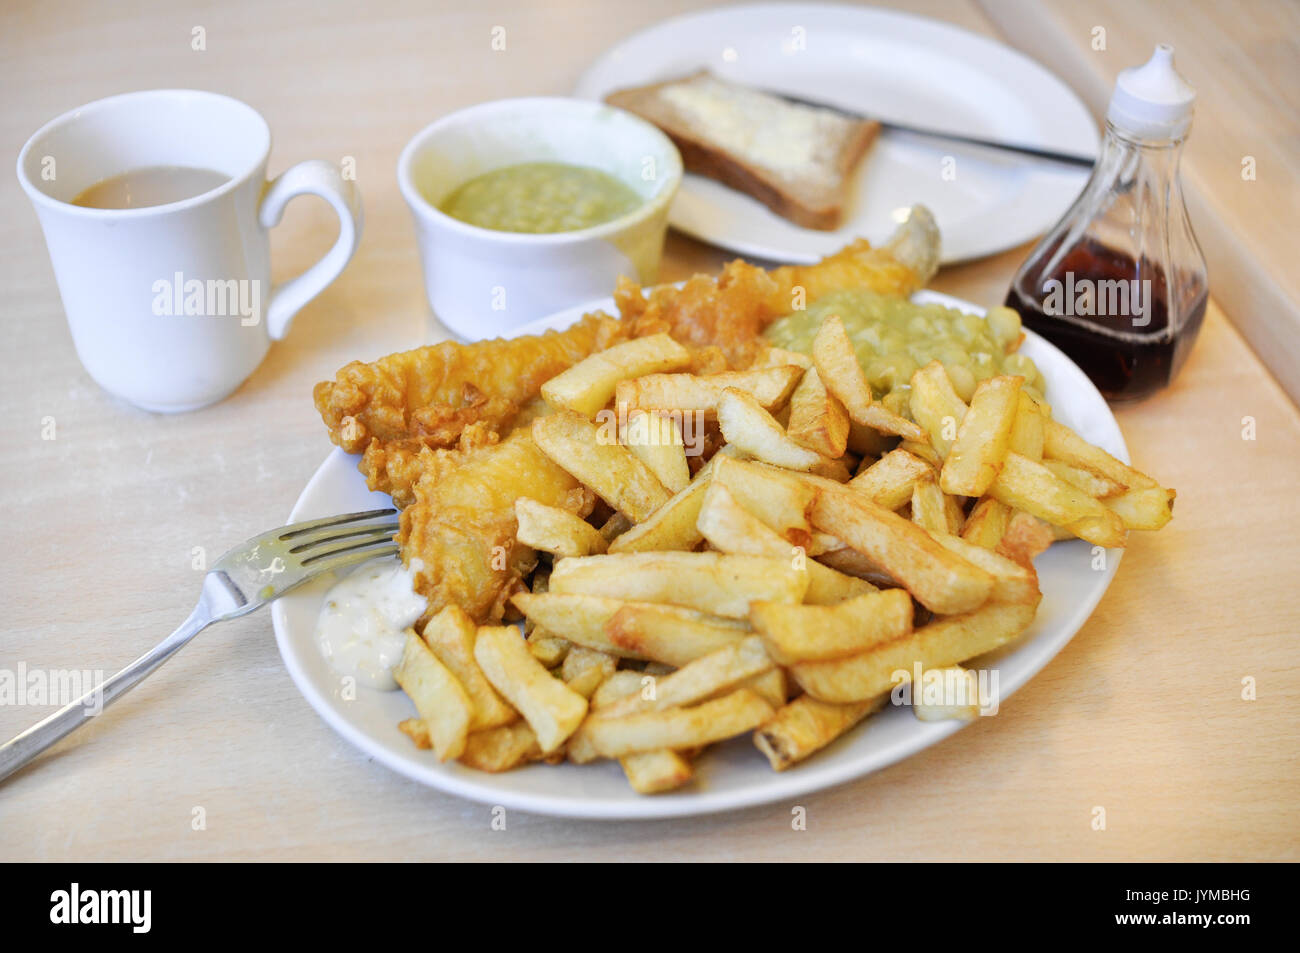 A plate of traditional British fish and chips, with mushy peas, bread and butter, vinegar, tartare sauce, and a cup of tea. - Stock Image